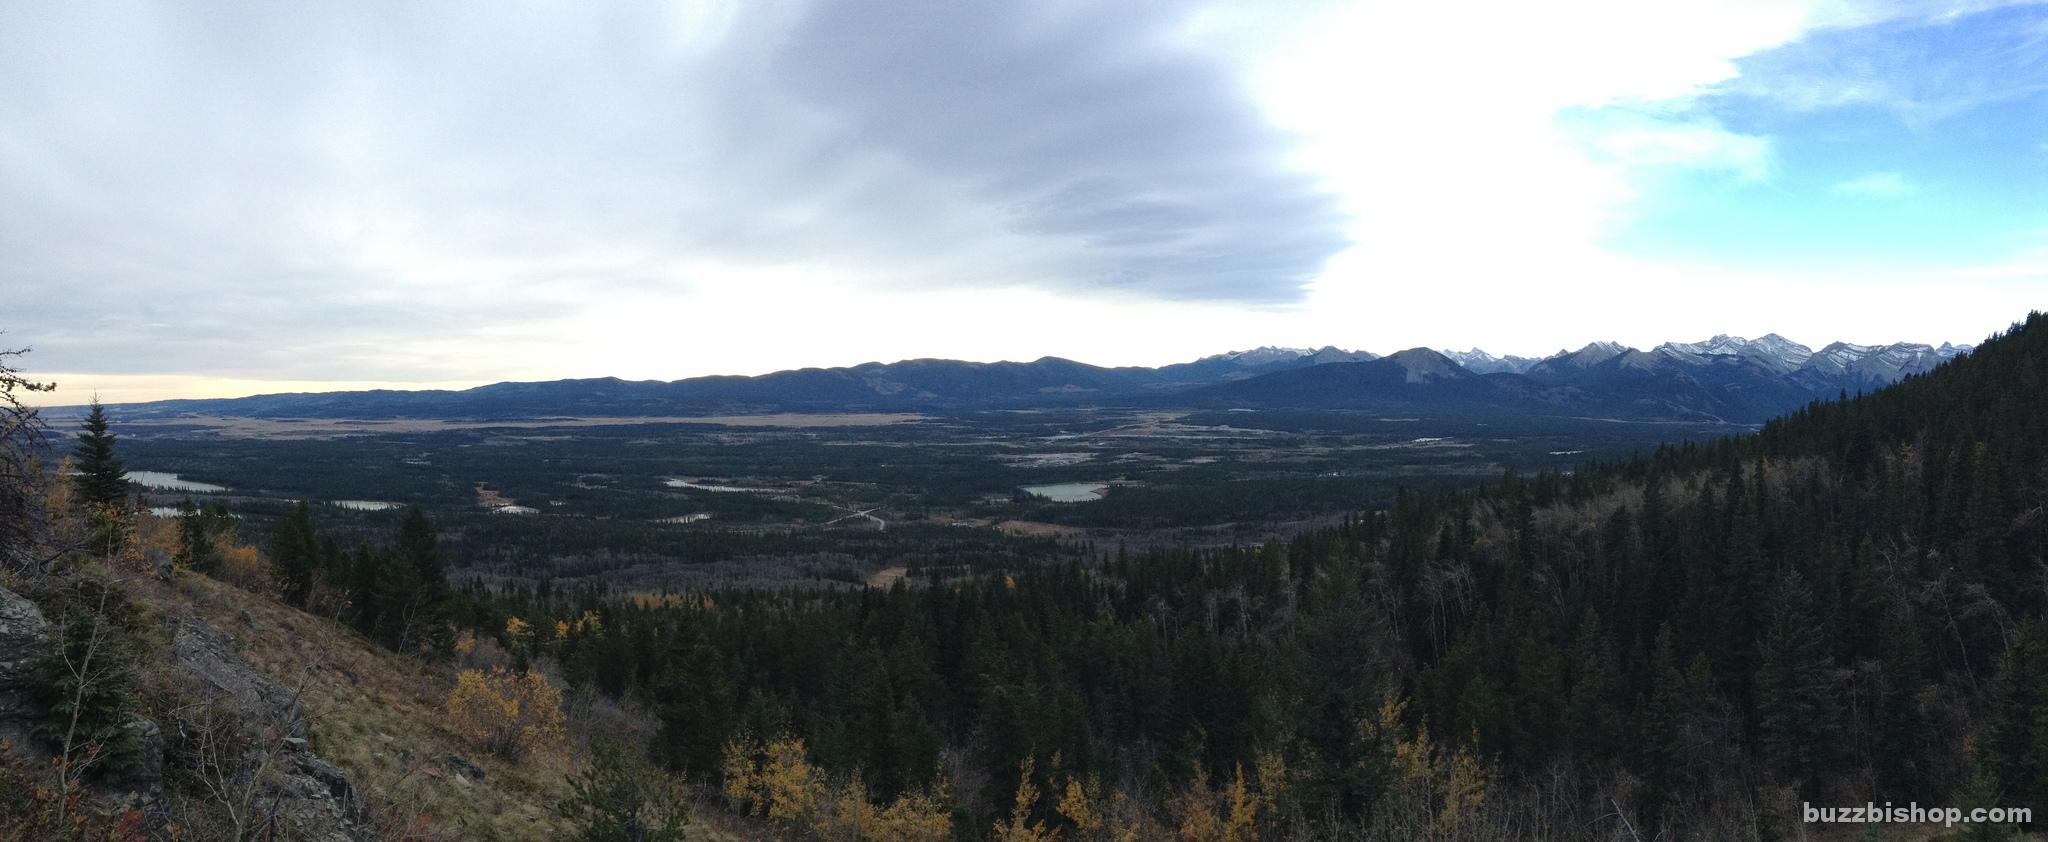 Bow Valley views on Mount Yamnuska